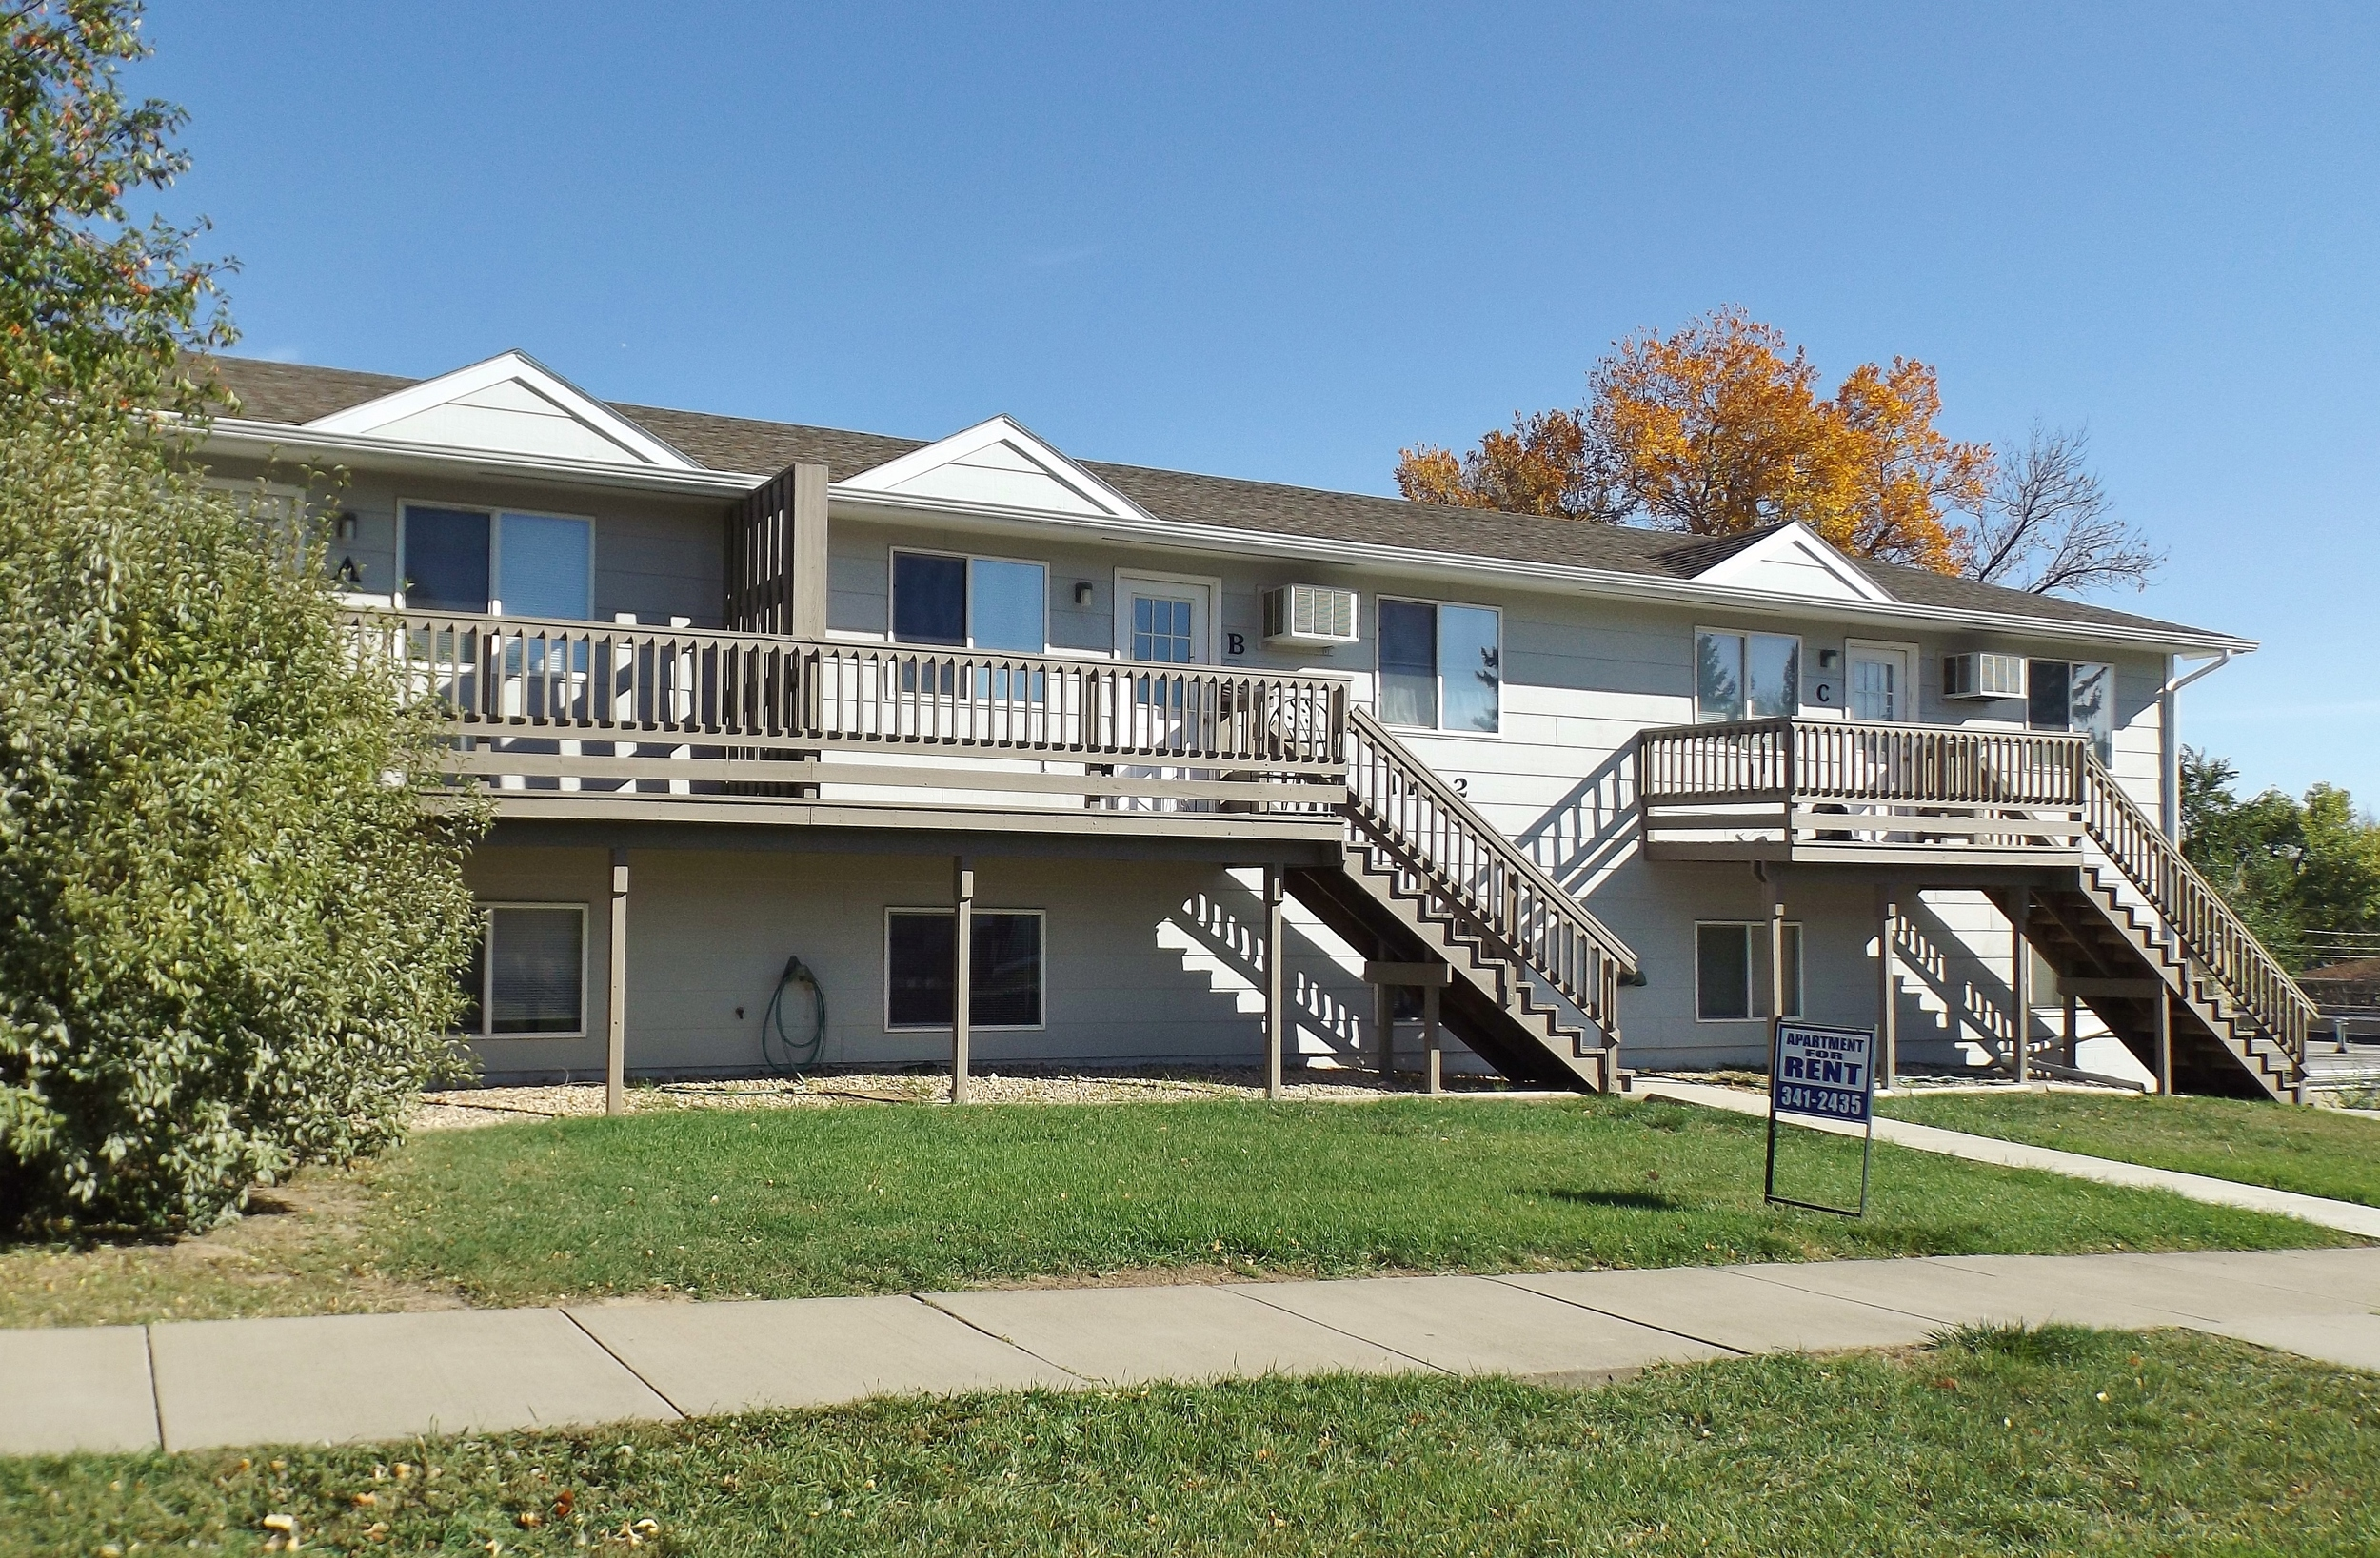 Seventh Street Apartments in Rapid City, SD - front view